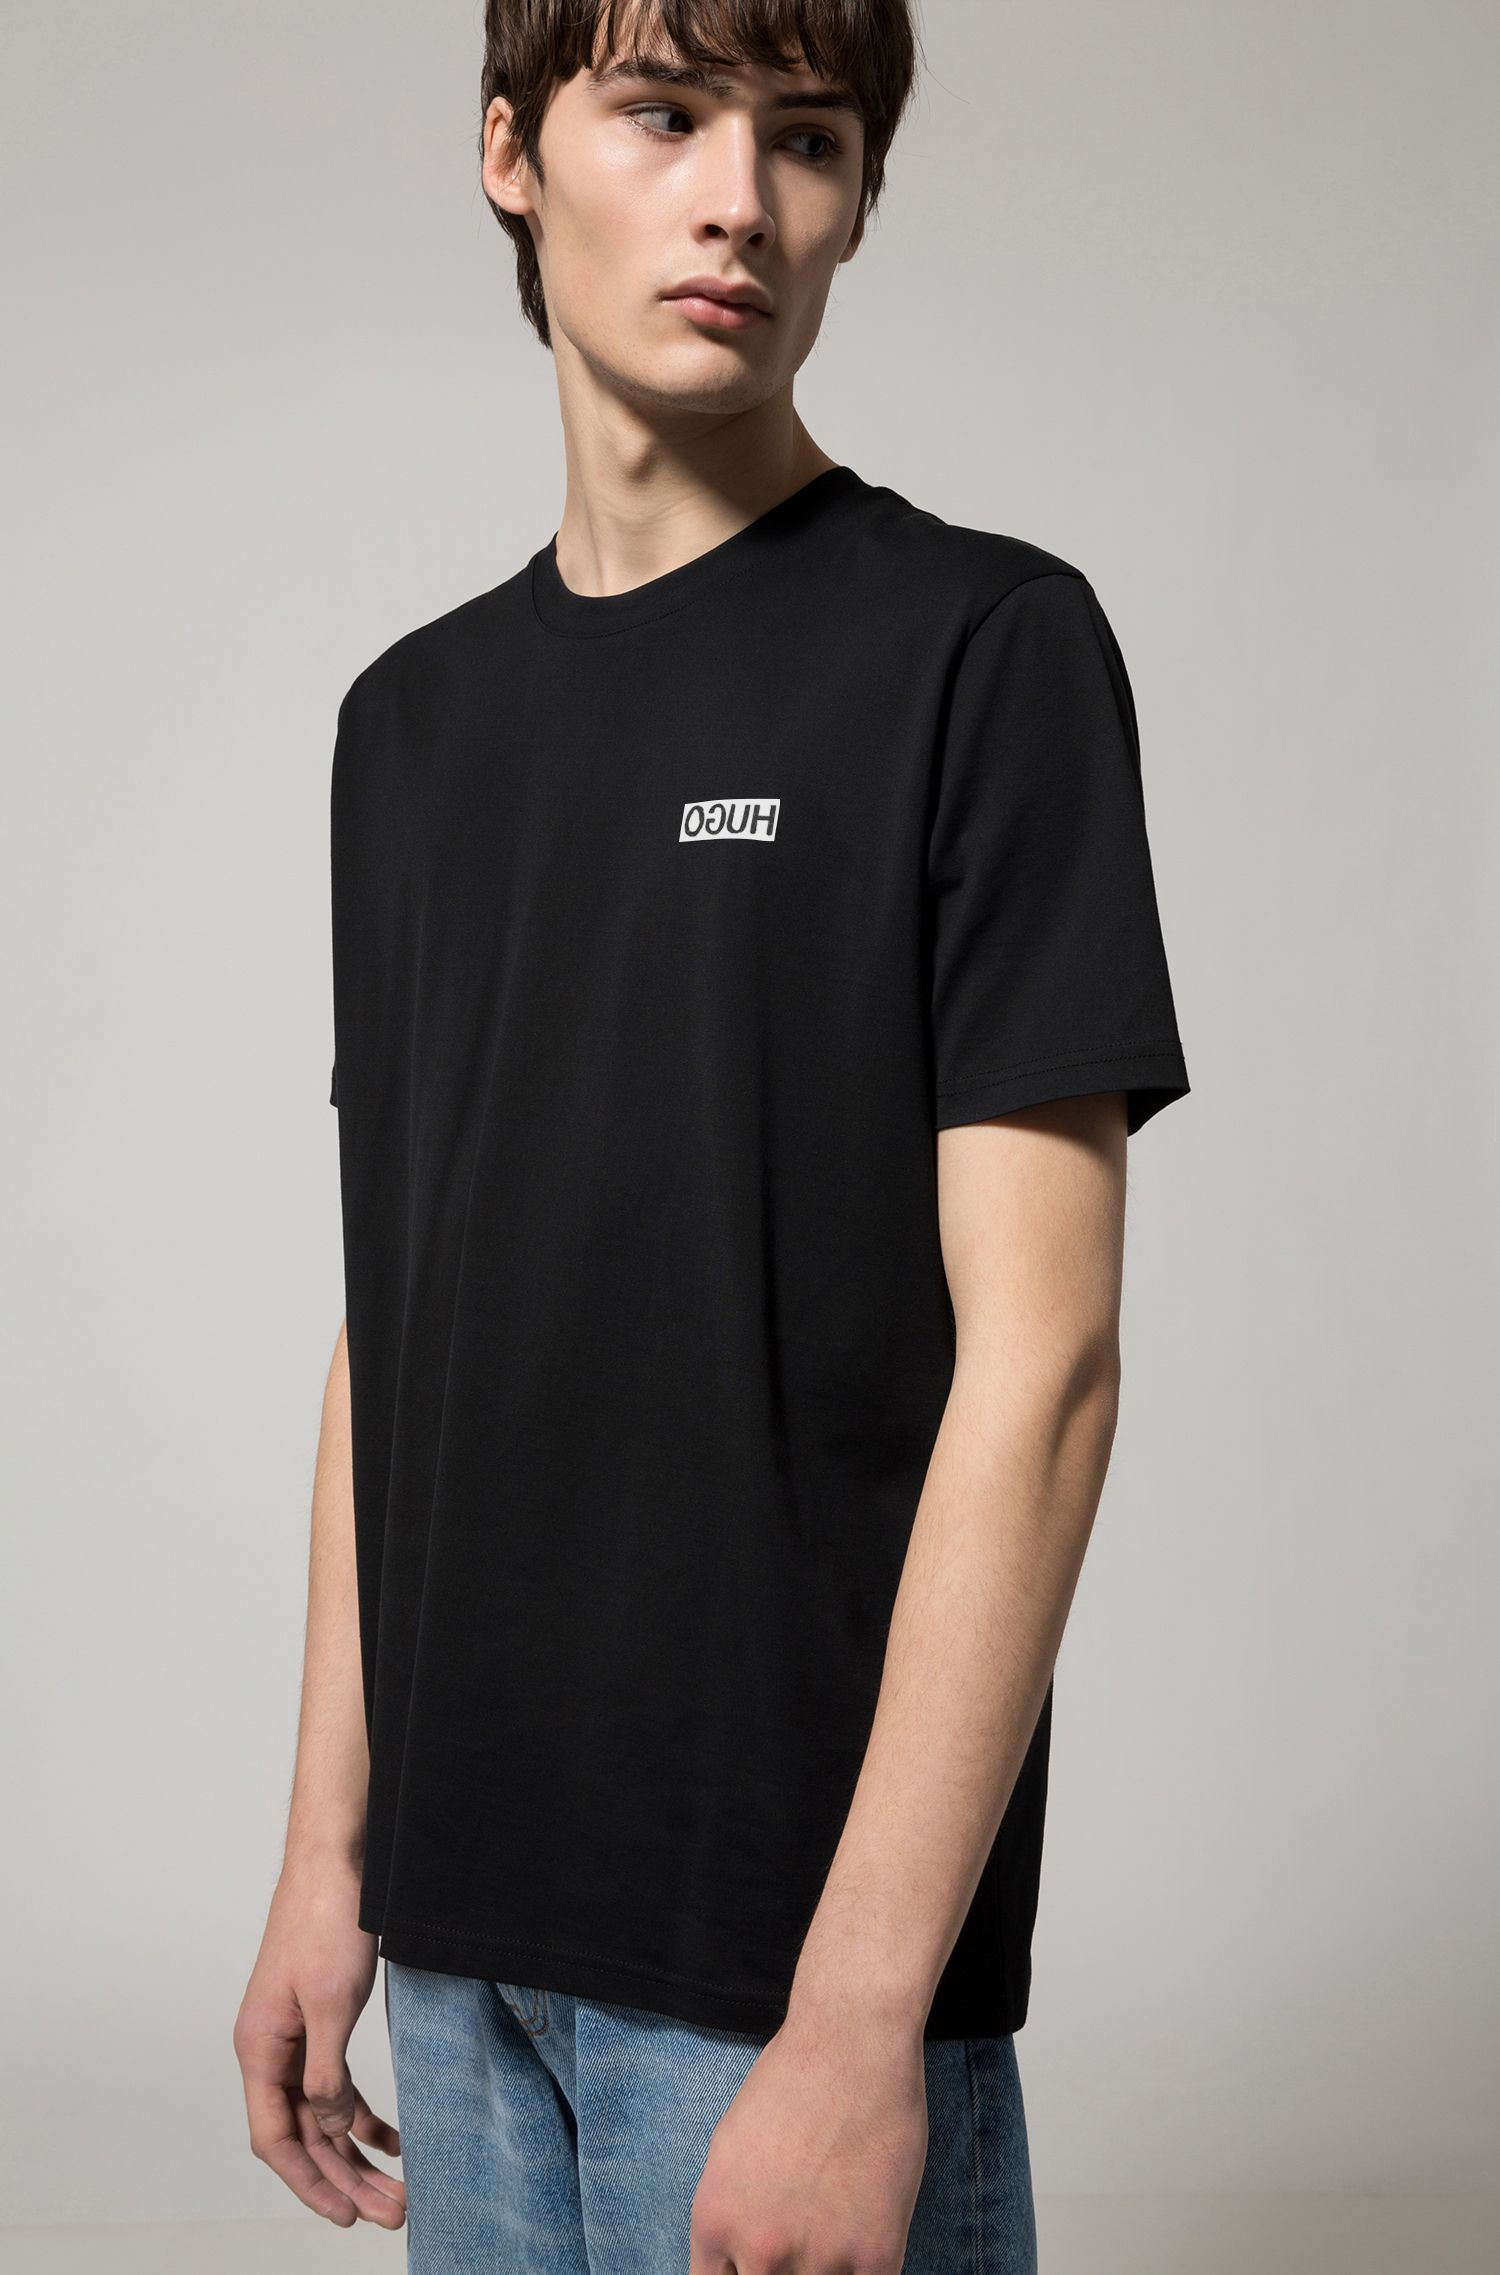 Oversized cotton jersey T-shirt with reverse logo